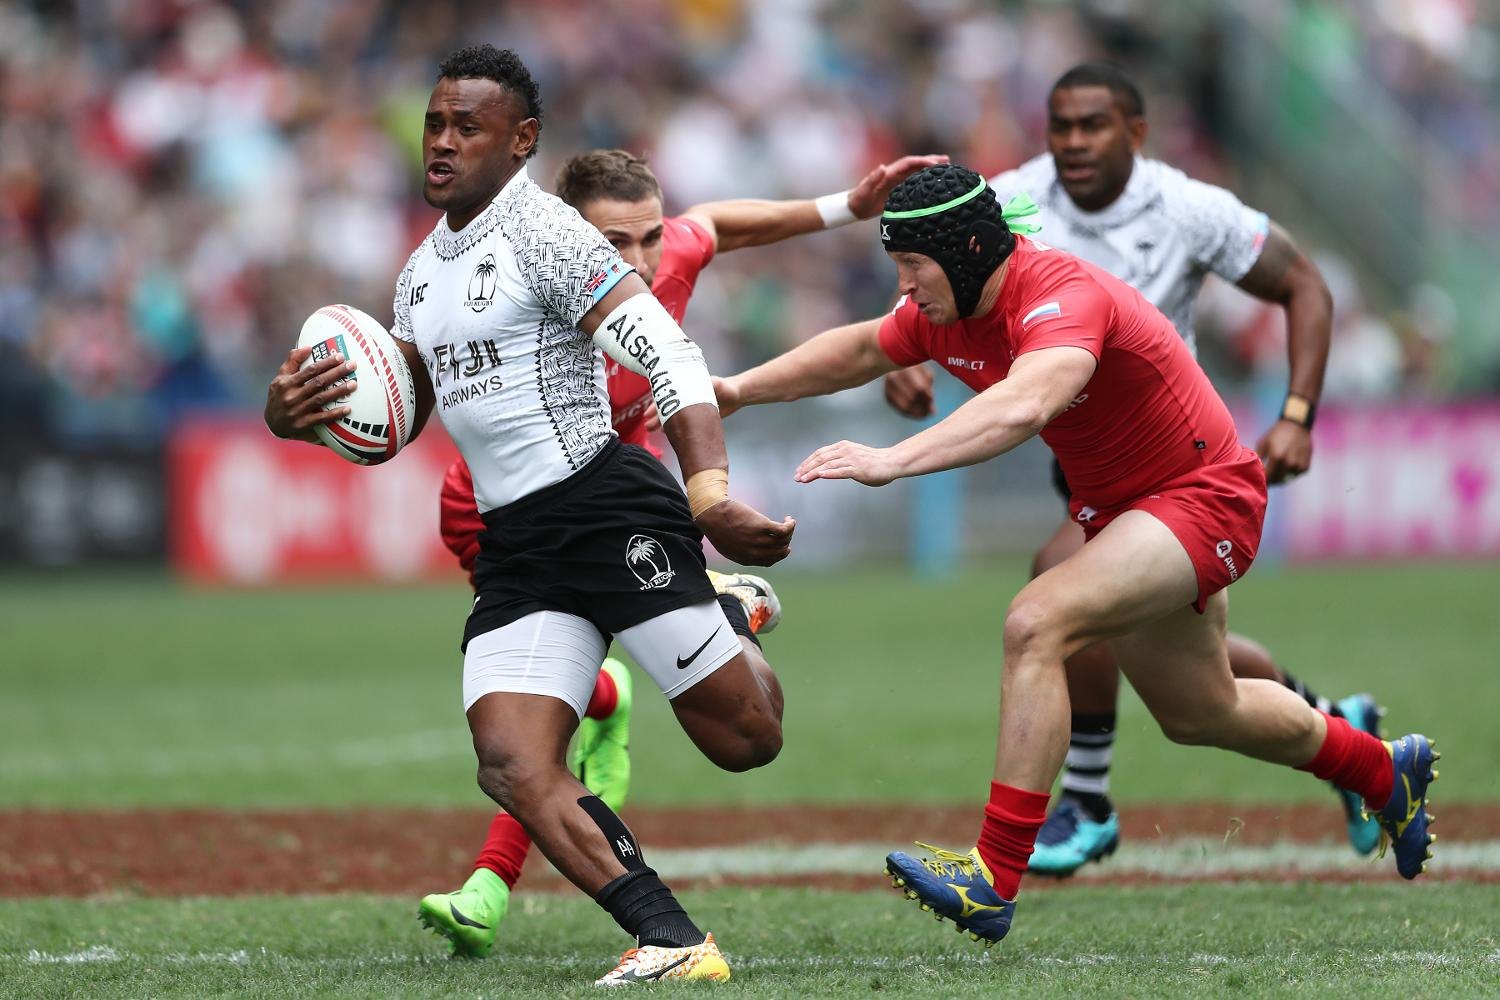 Cathay Pacific/HSBC Hong Kong Sevens 2018